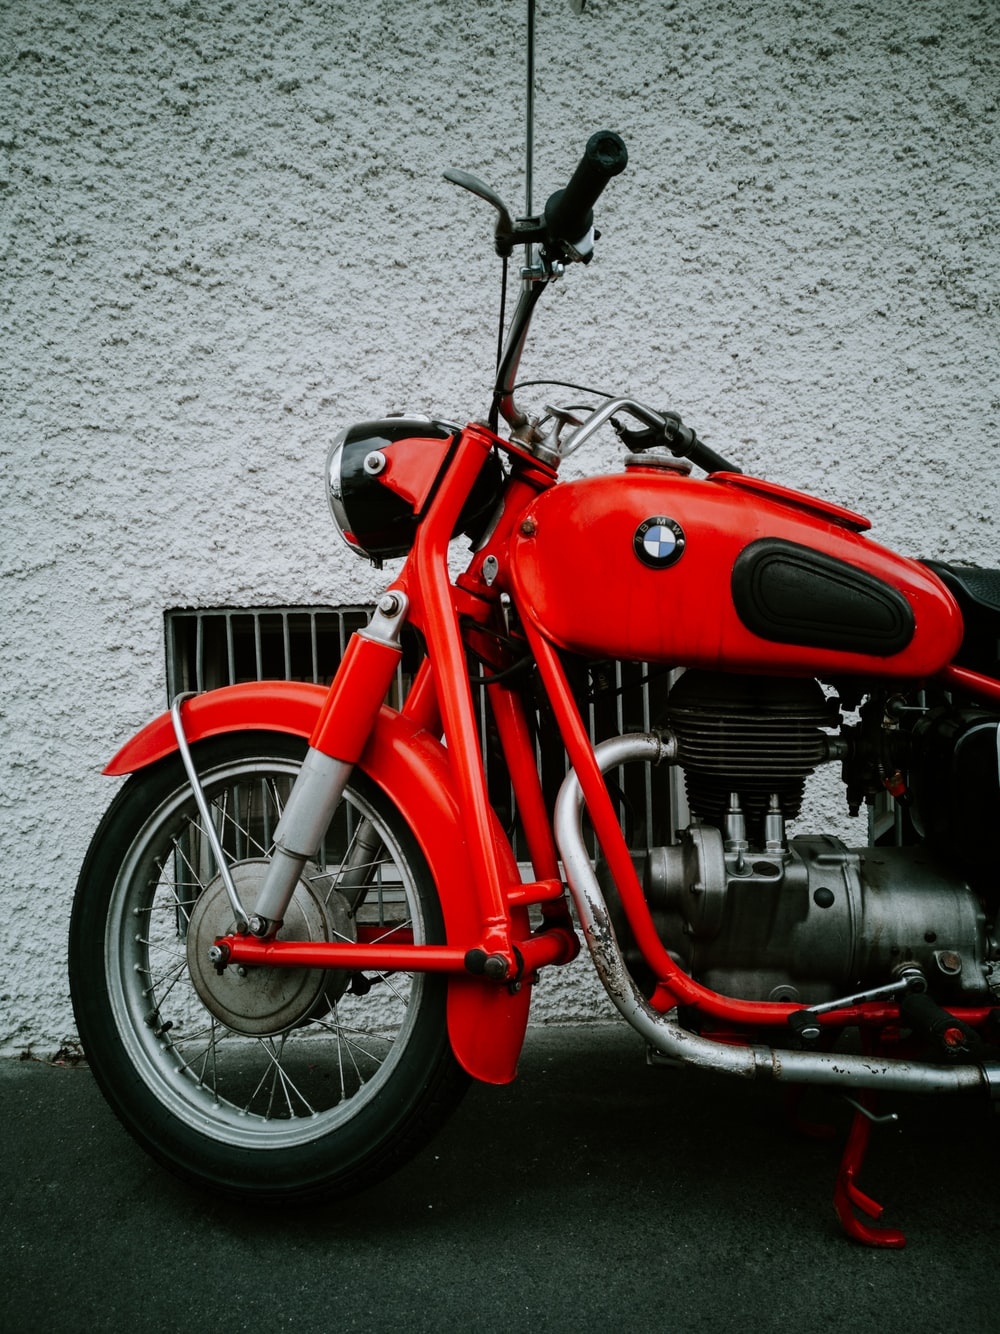 red and black motorcycle parked beside white wall